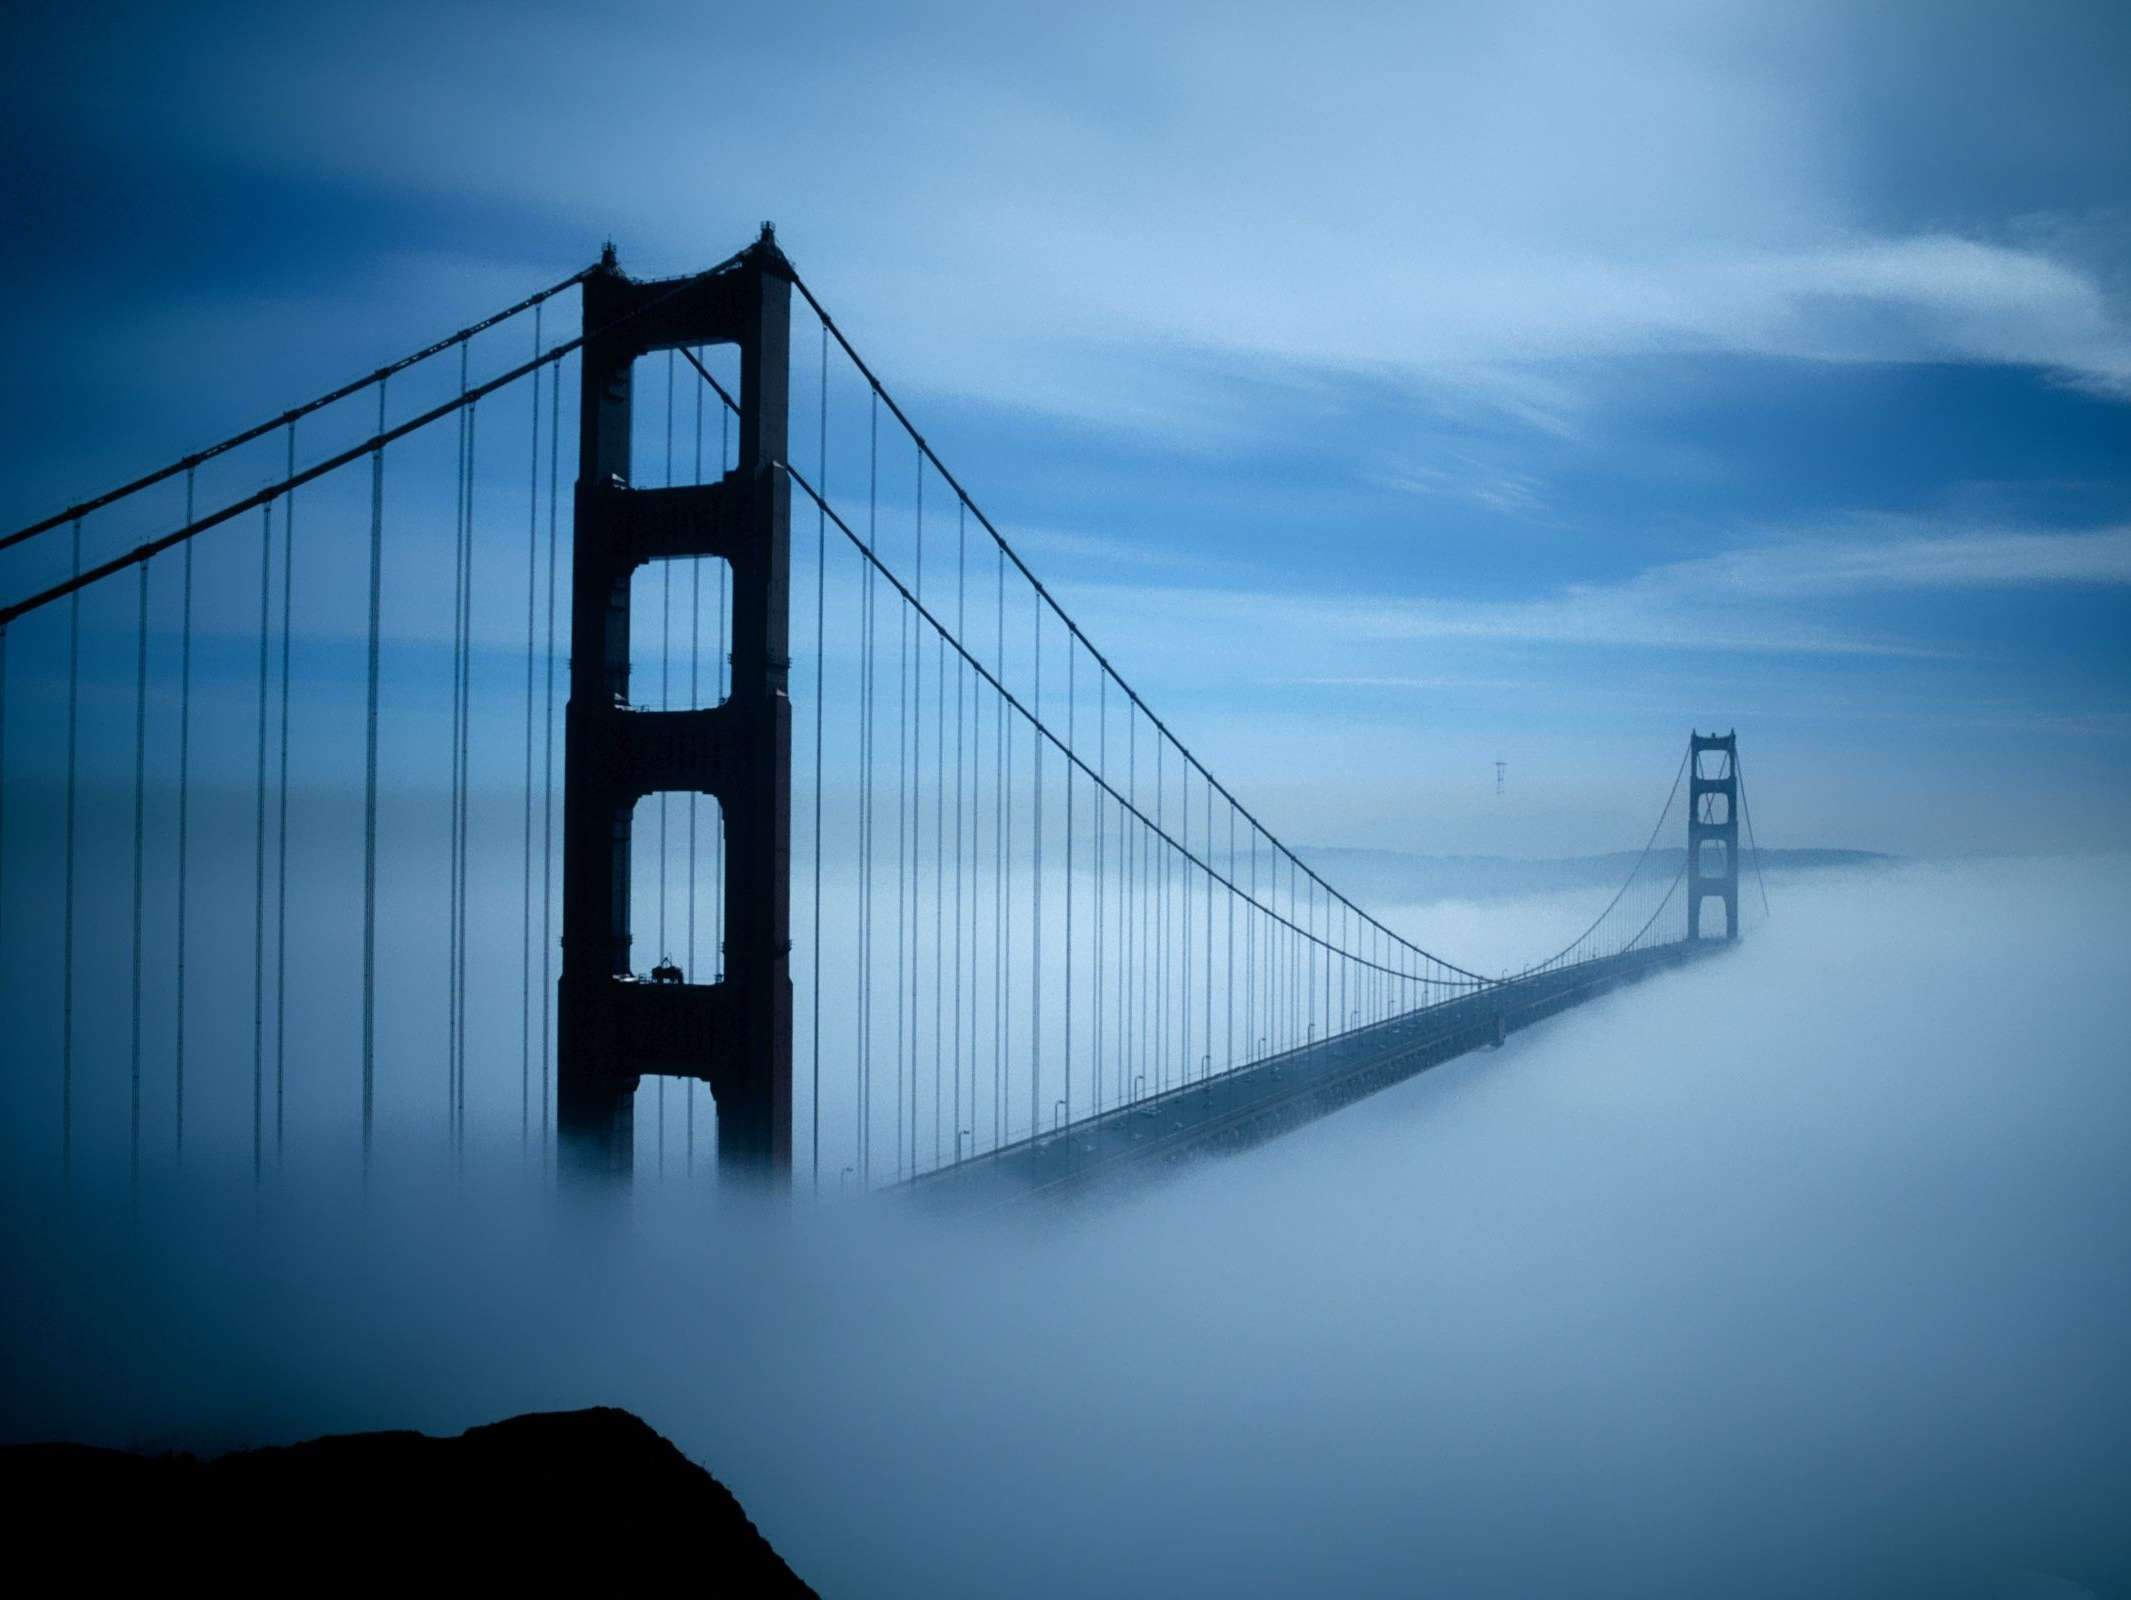 Reasons to visit San Francisco - The fog!